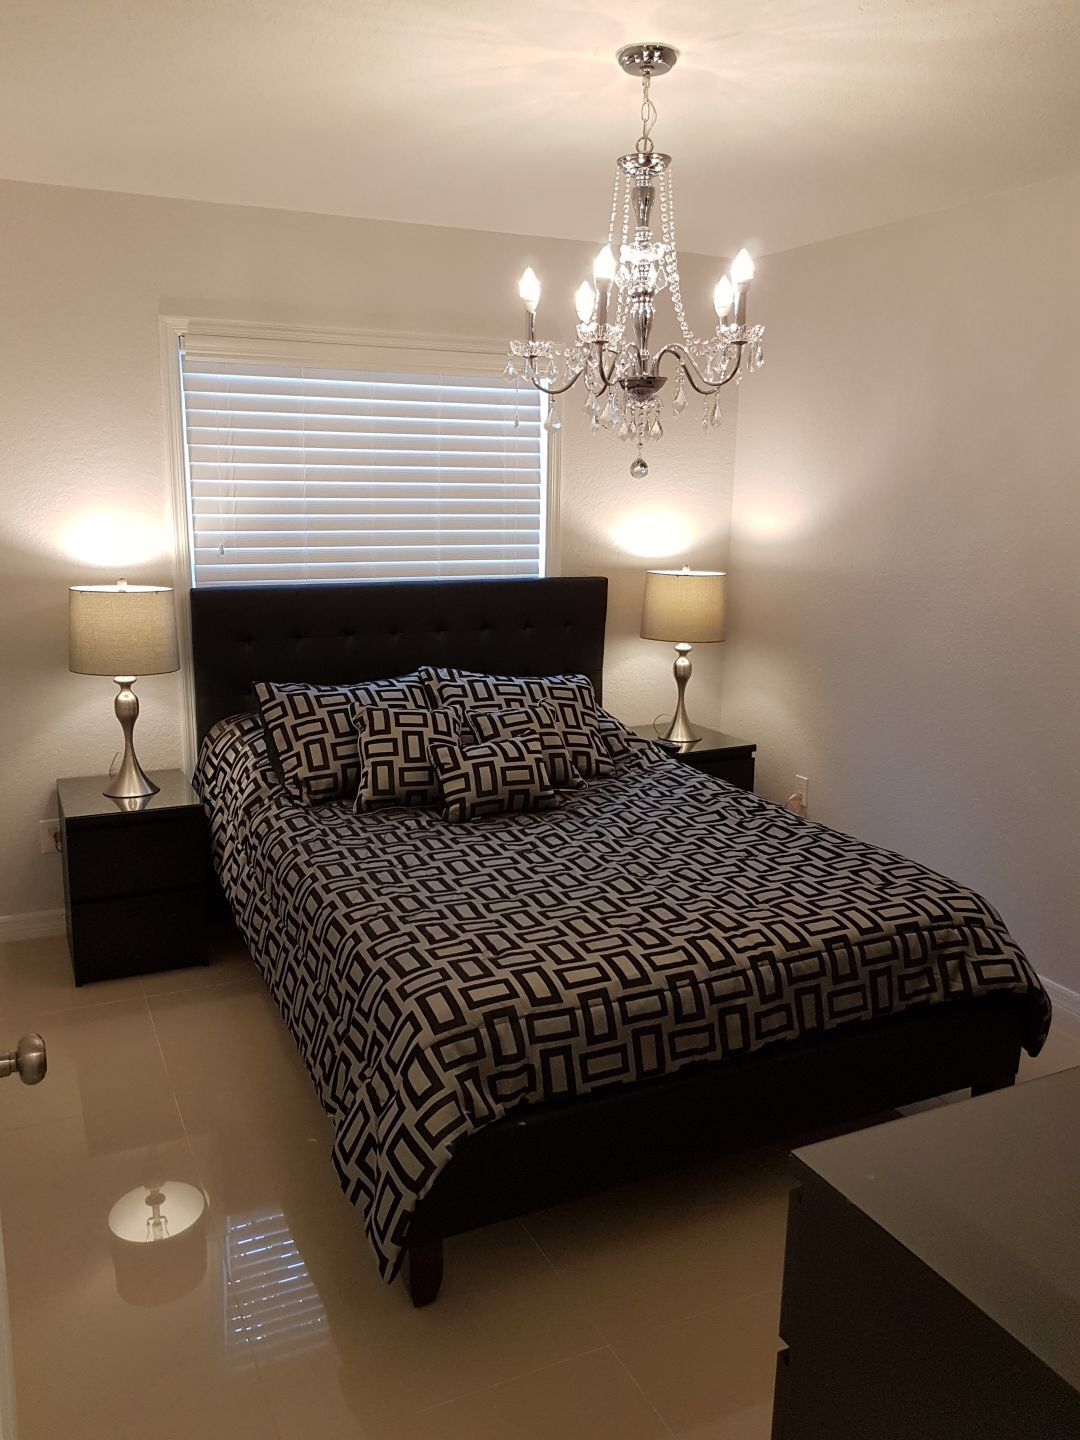 4 bedrooms and 2 bathrooms beautiful condo in the heart of